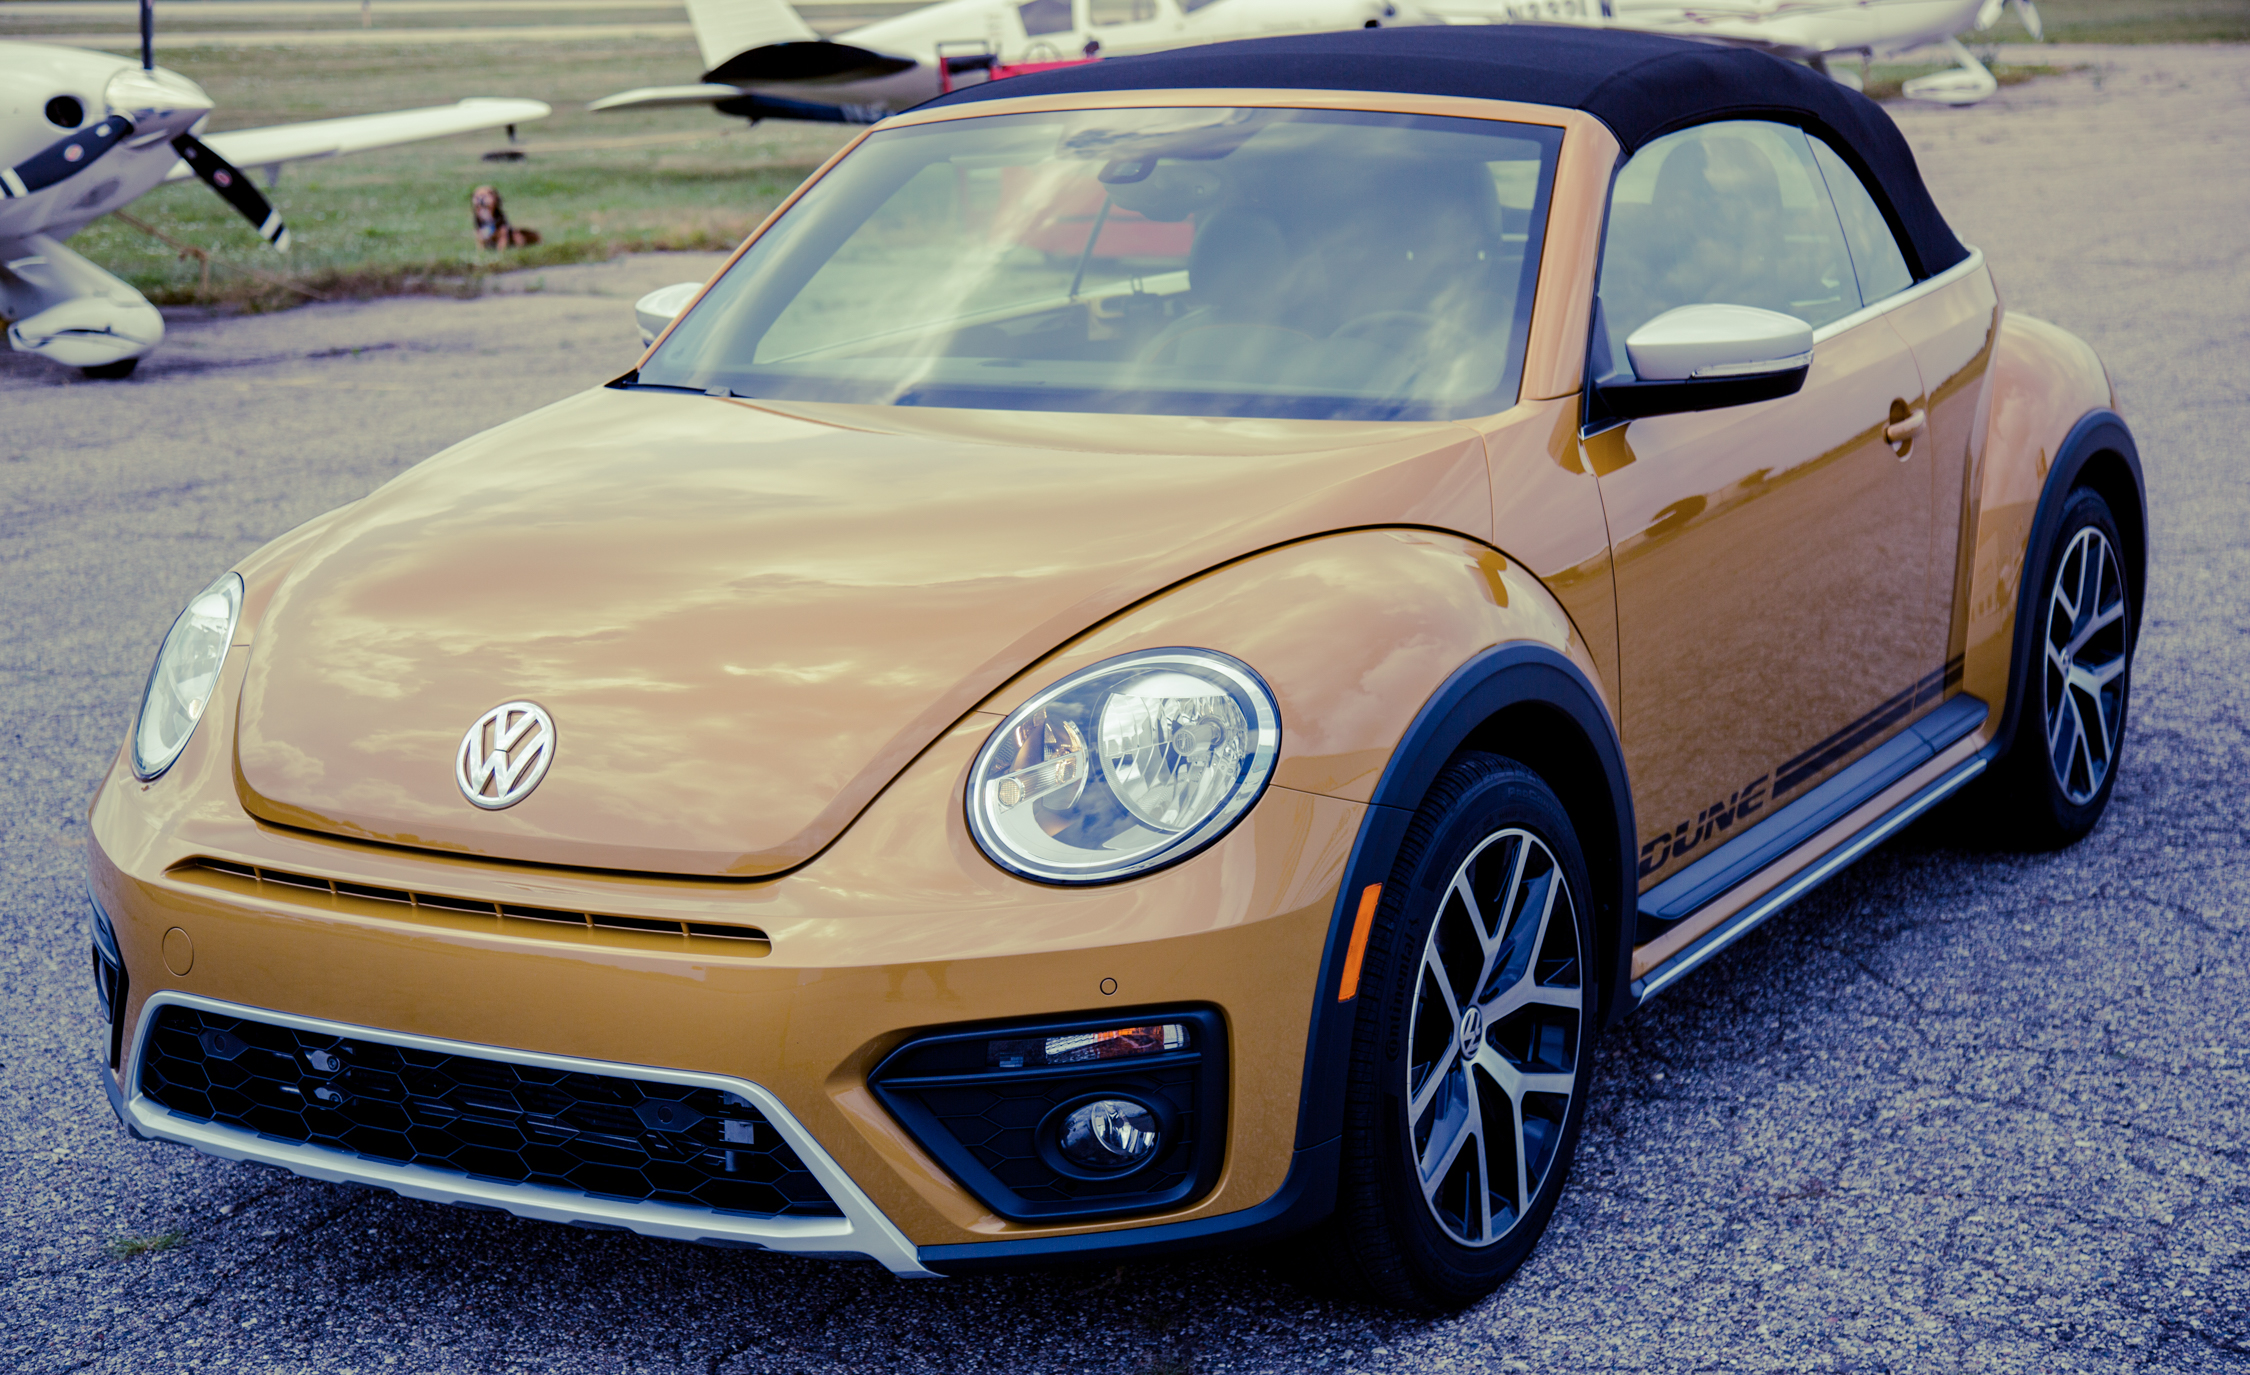 2017 Volkswagen Beetle Dune Convertible Exterior (Photo 2 of 19)